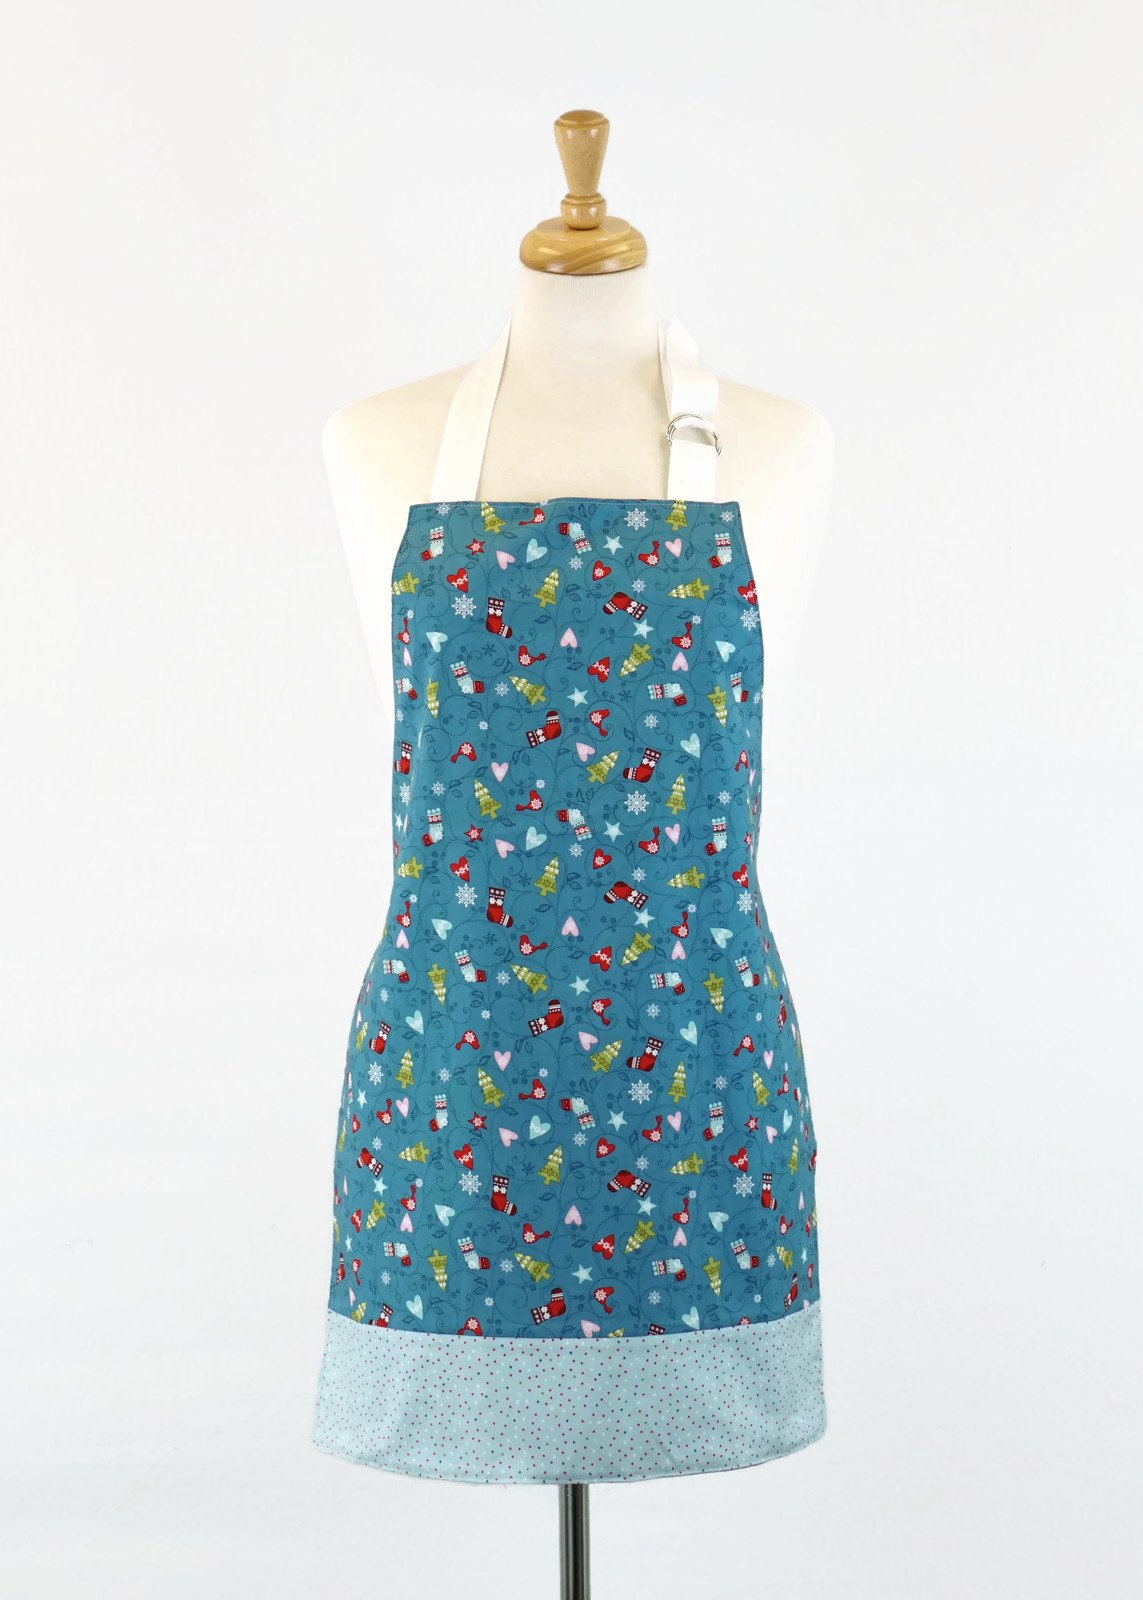 Women's Apron - Blue Christmas